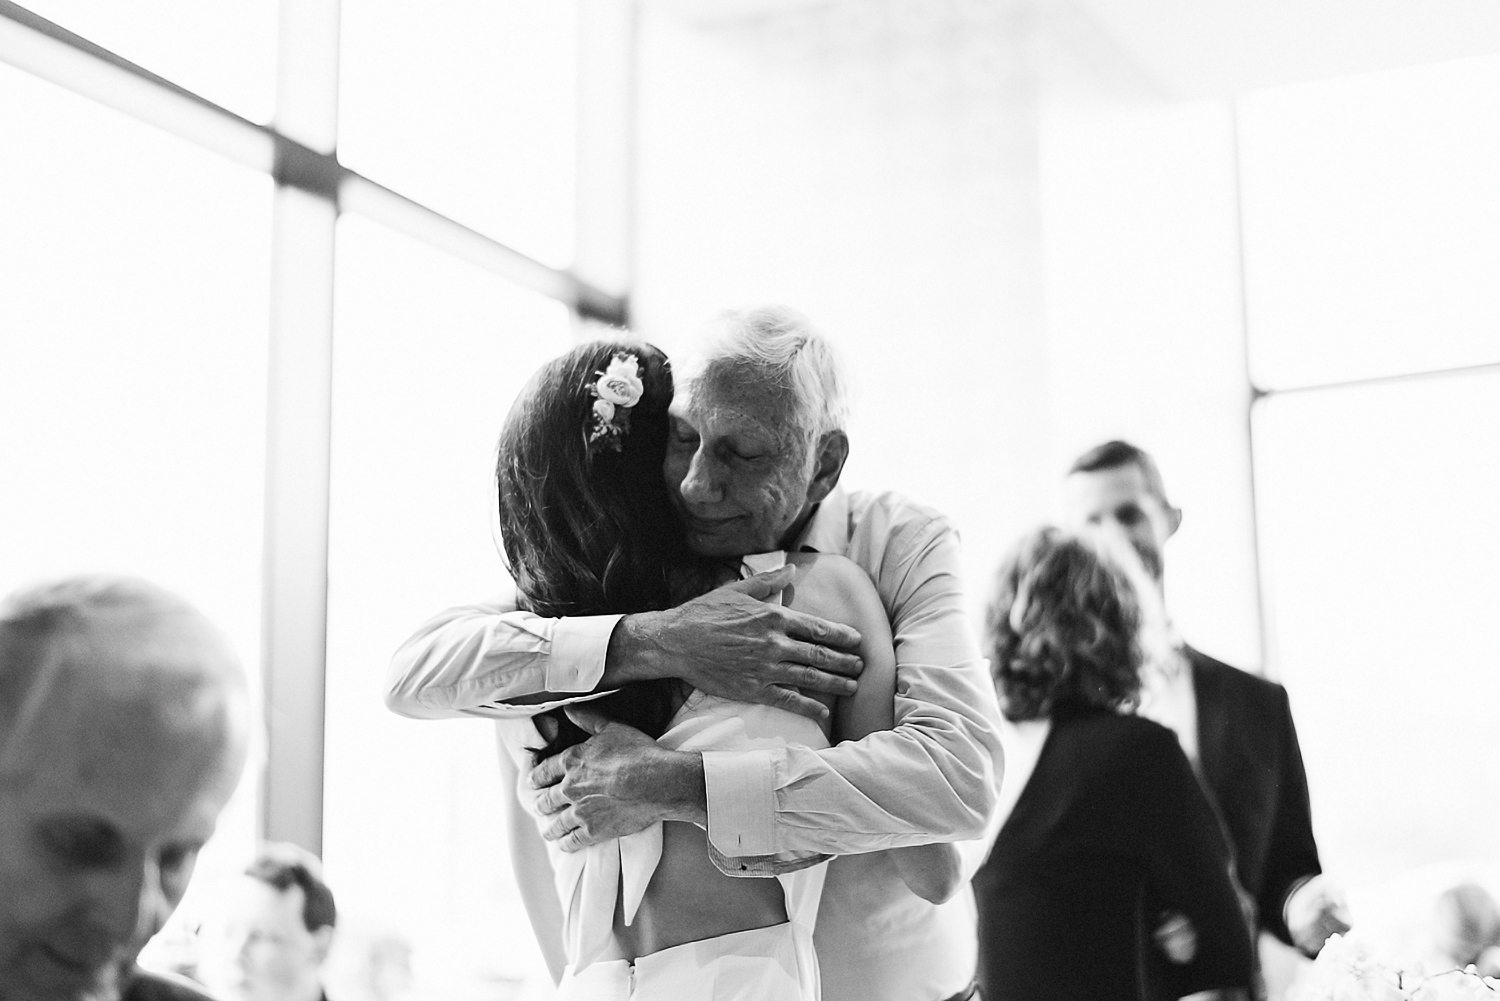 65-551-Downtown-Toronto-Wedding-Venues-The-Broadview-Hotel-Vintage-Venue-Bride-and-Groom-Getting-Ready-Suit-Detail-shot-Candid-Documentary-Wedding-Photography-Hug-.jpg